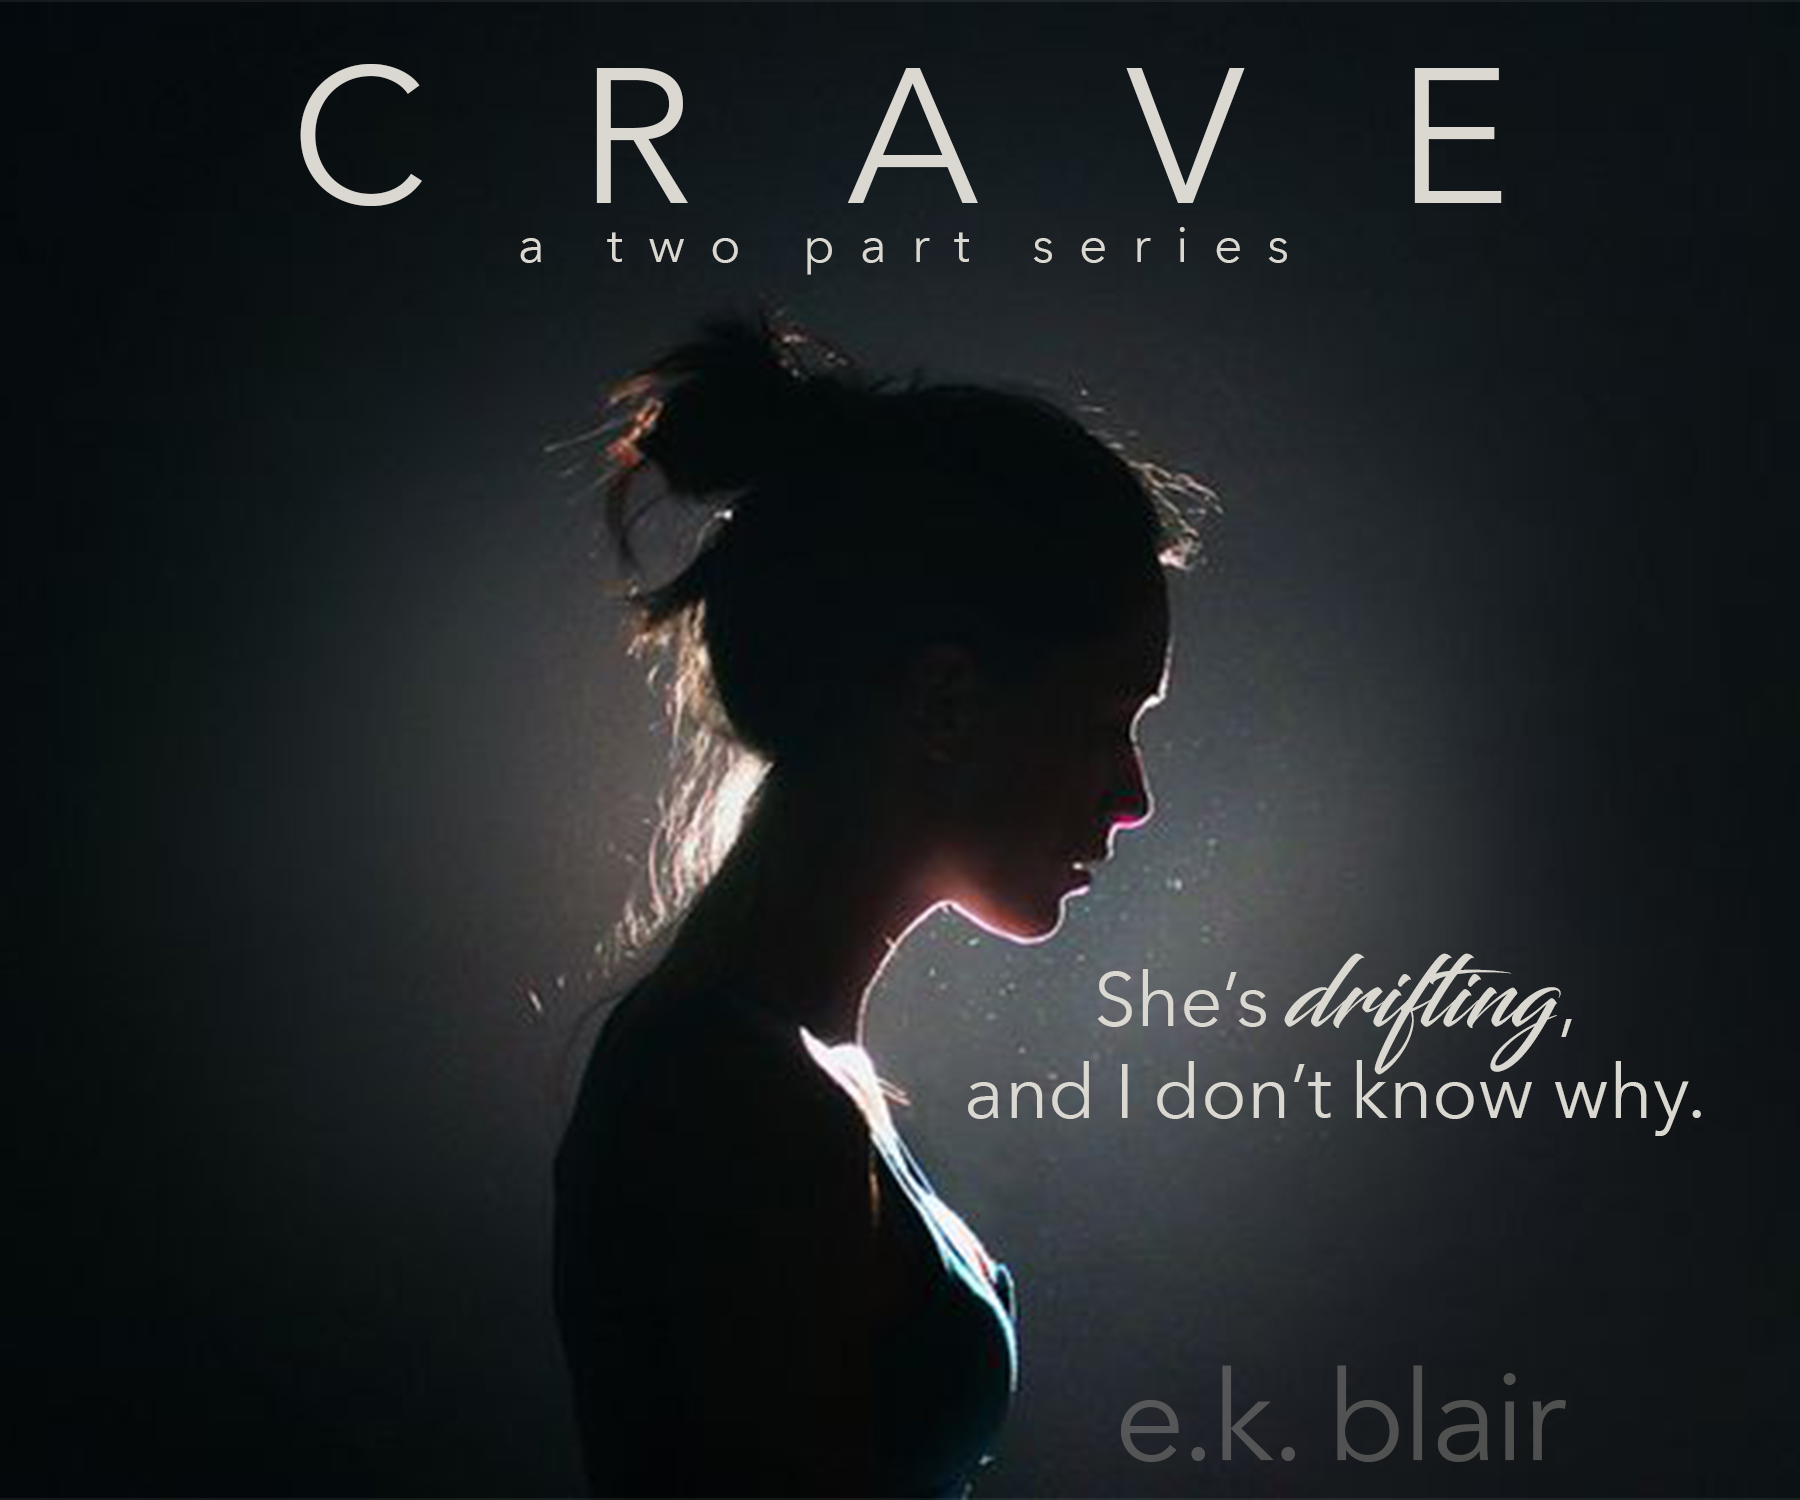 Crave-Part-Two-Teaser-1